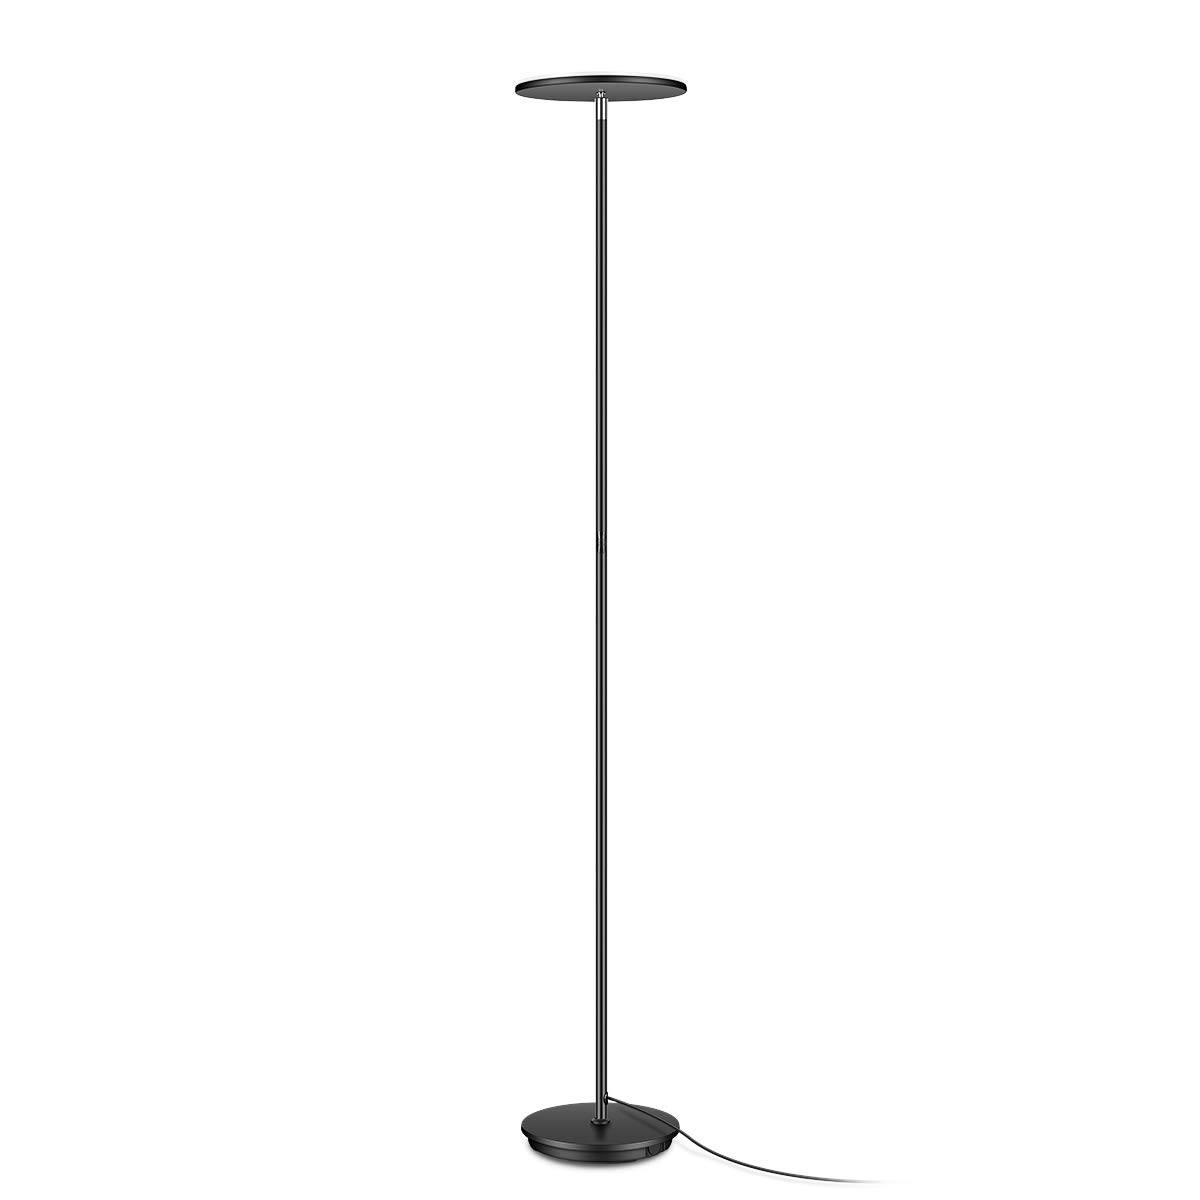 IESTARING LED Torchiere Floor Lamp-Tall Standing Modern Pole Light for Living Rooms & Offices-Adjustable Warm to Cool White Dimmable Uplight,Black